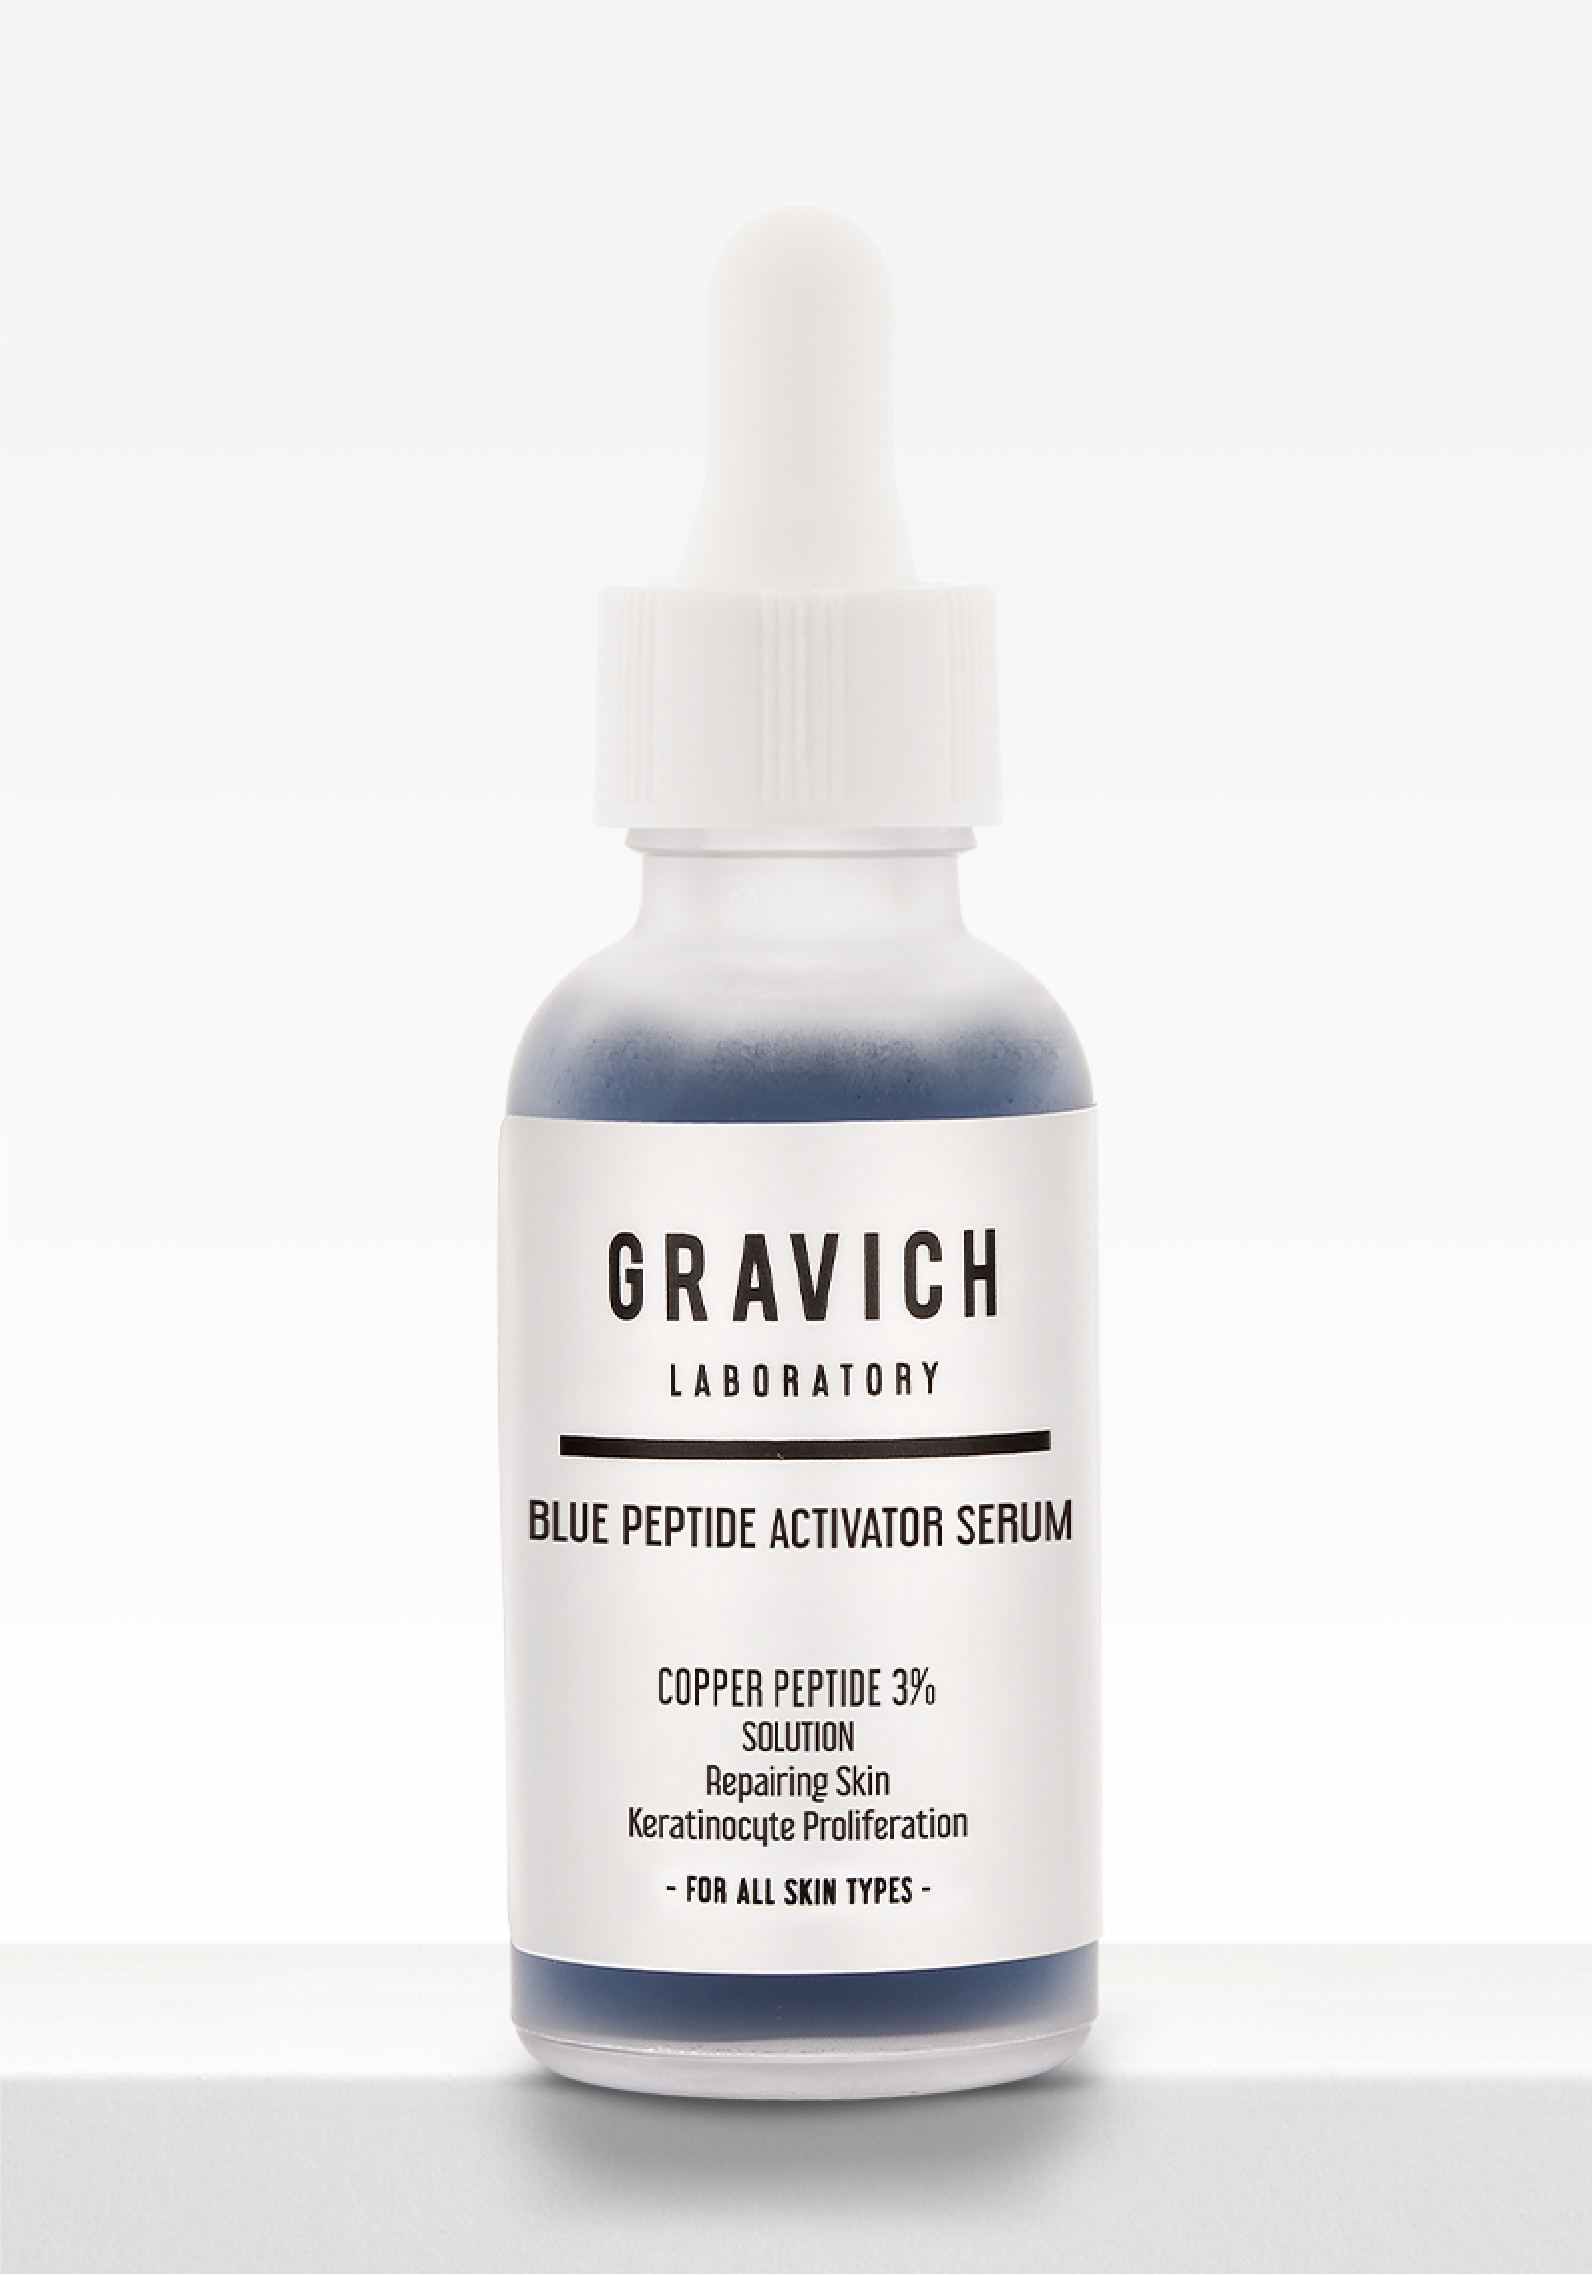 Gravich Blue Peptide Activator Serum 30 Ml